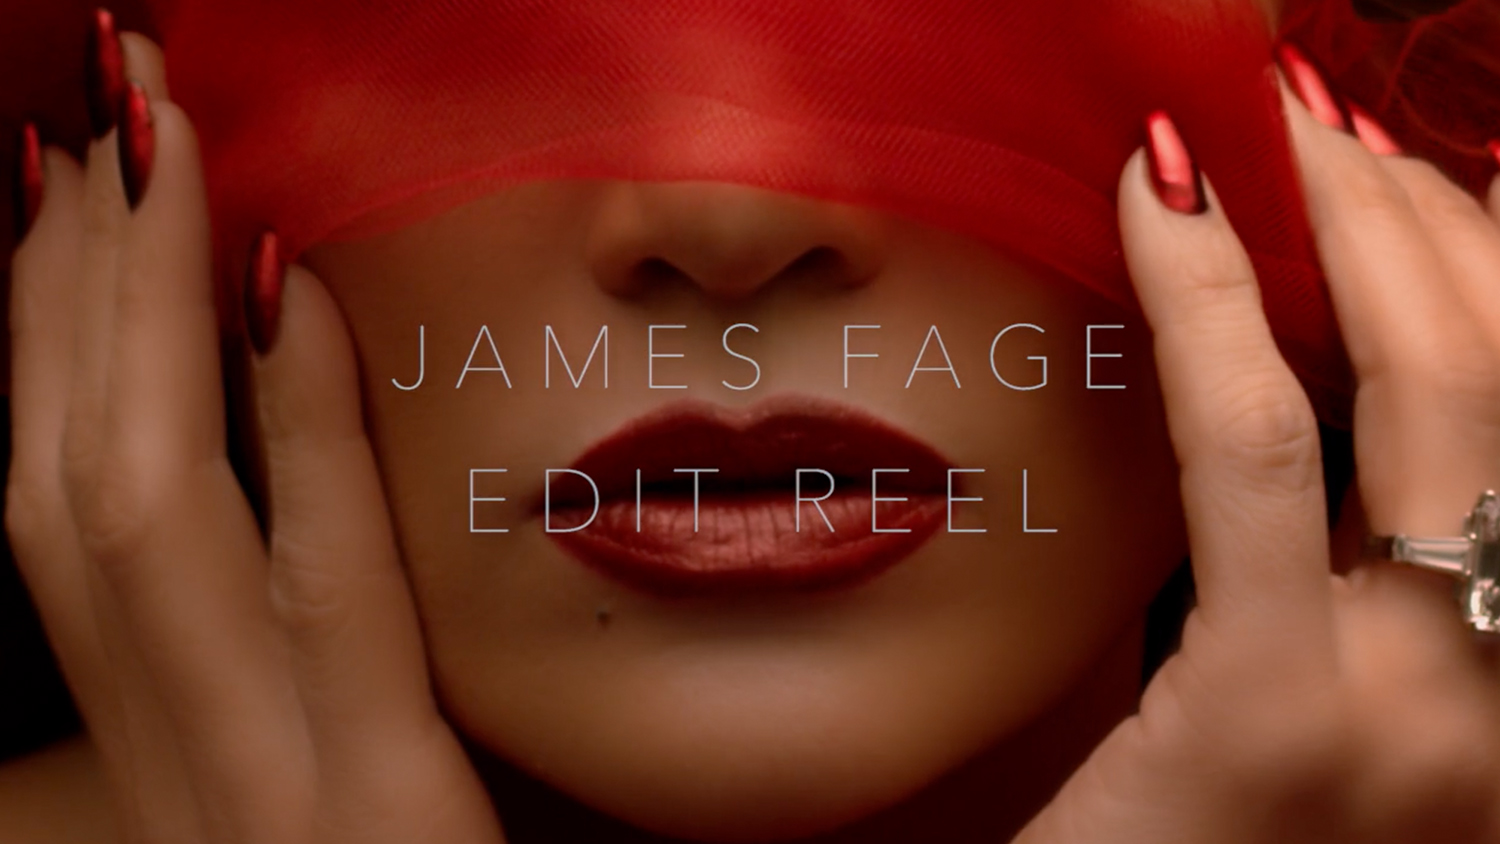 JAMES FAGE | EDITING REEL 2019